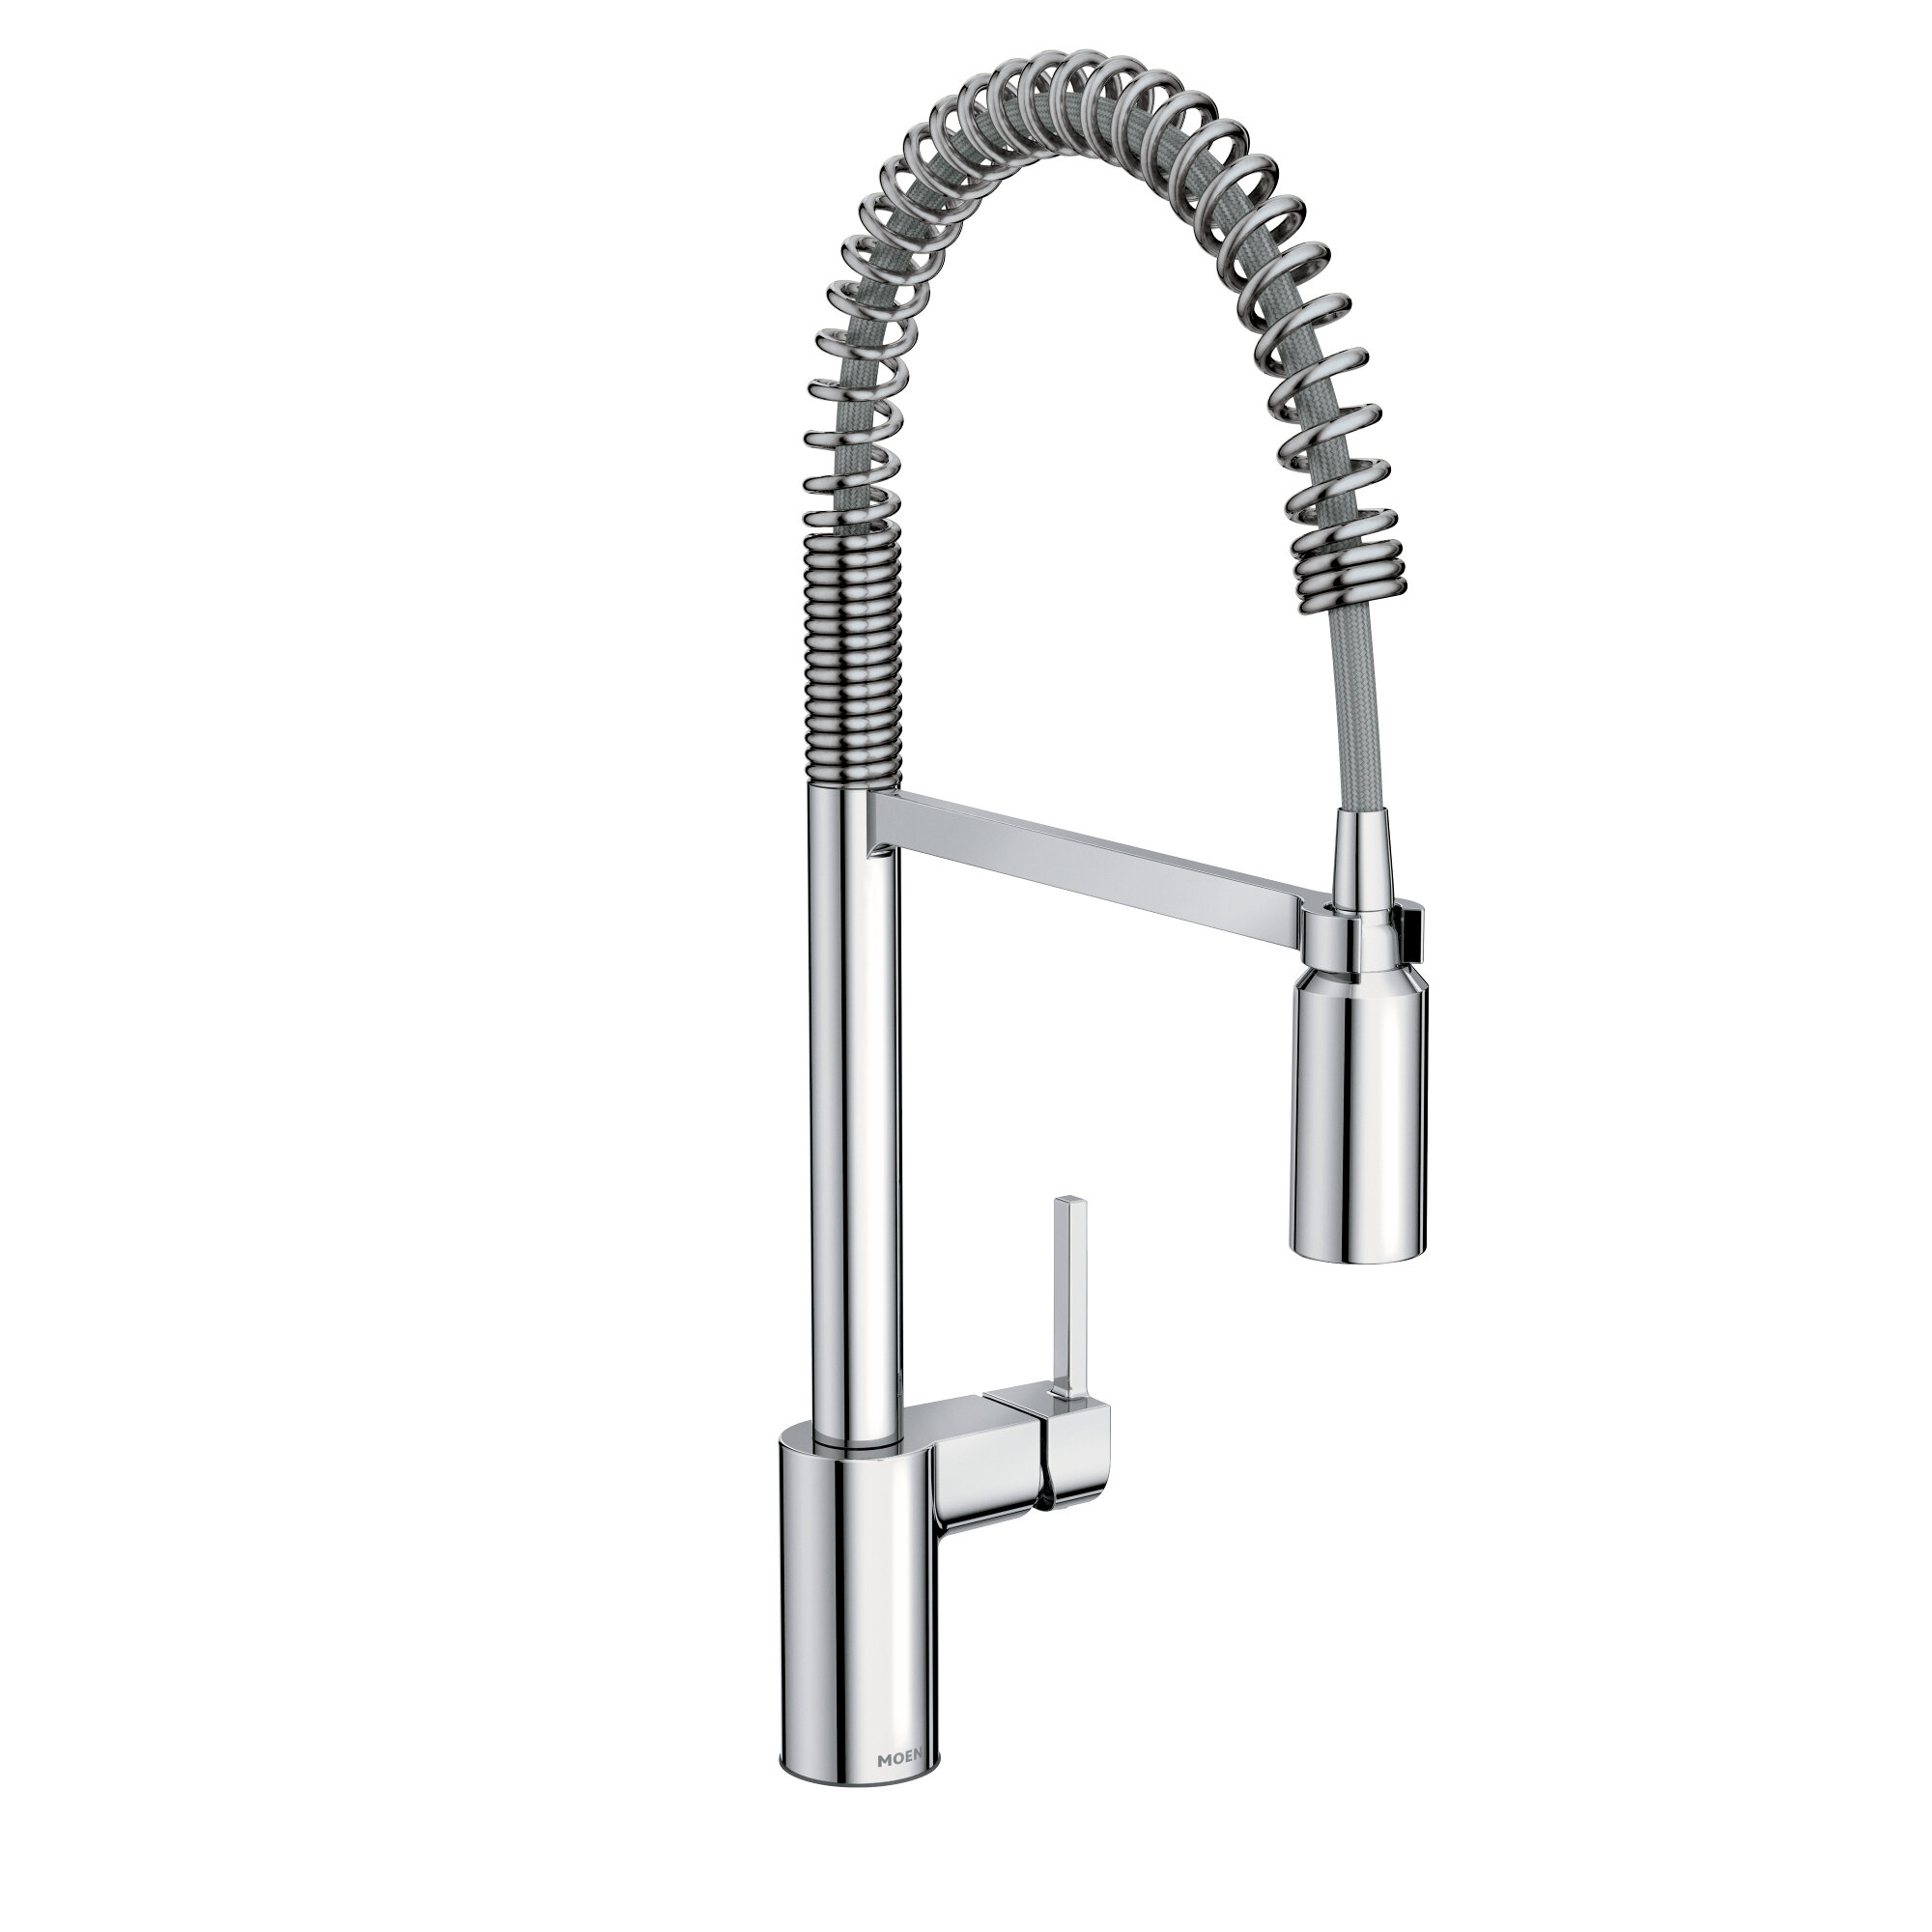 moen bathroom instructions faucet shower for the waterfall fountain repair bronze kohler sink faucets vessel